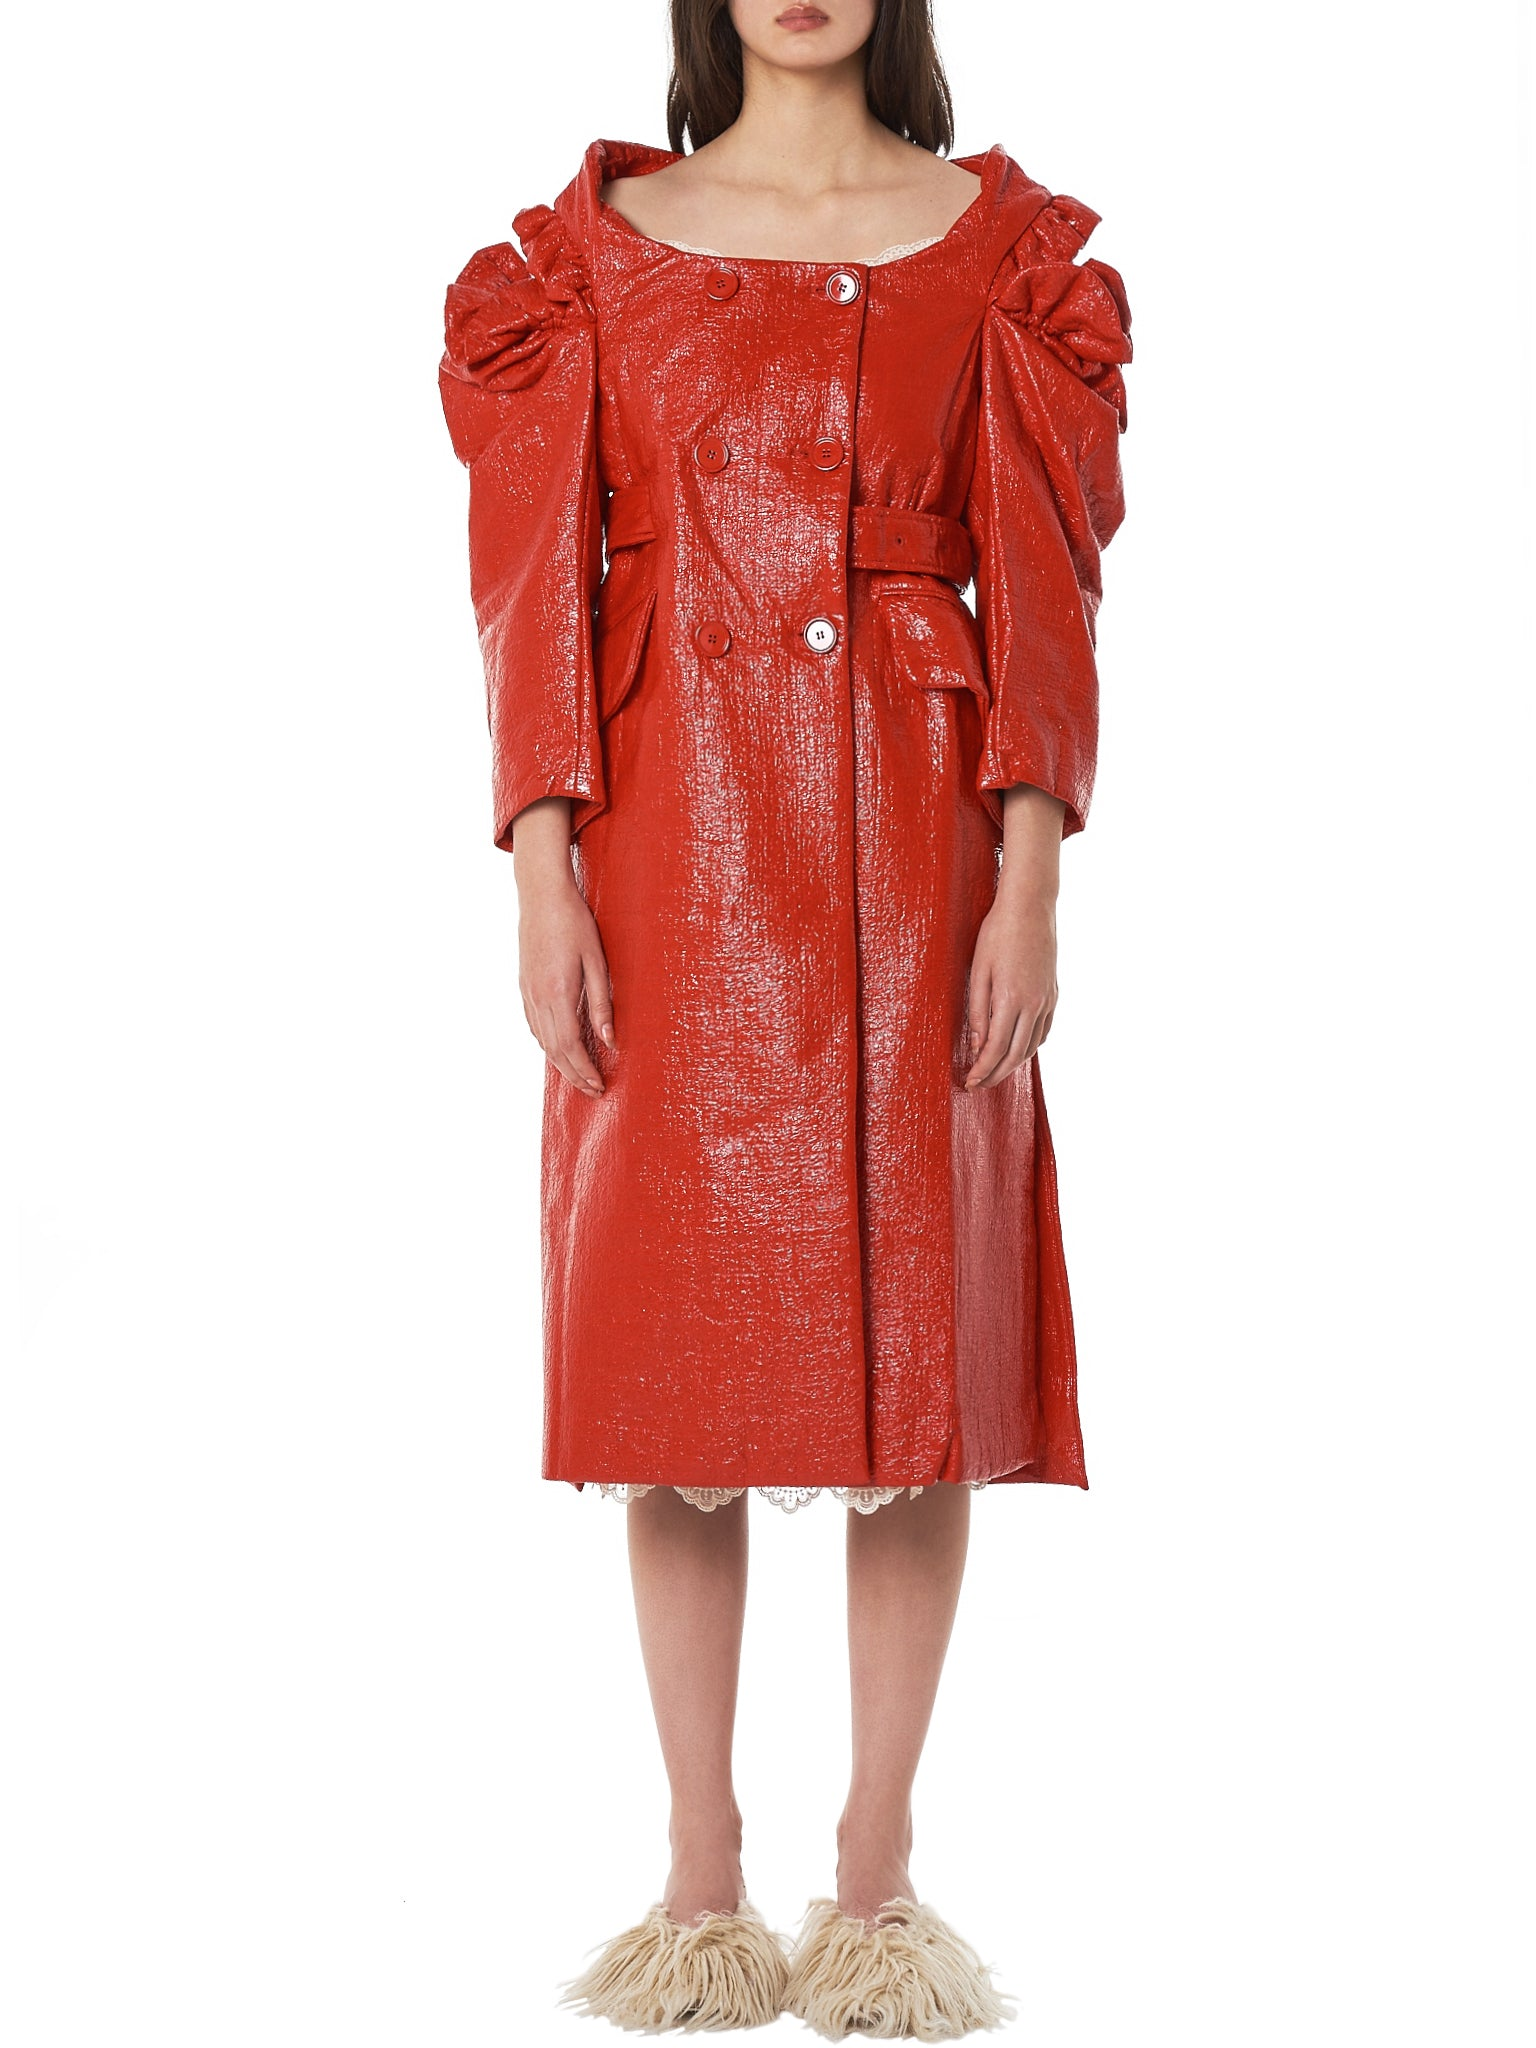 Coated Foil Cut-Out Coat (3242-0223-RED)